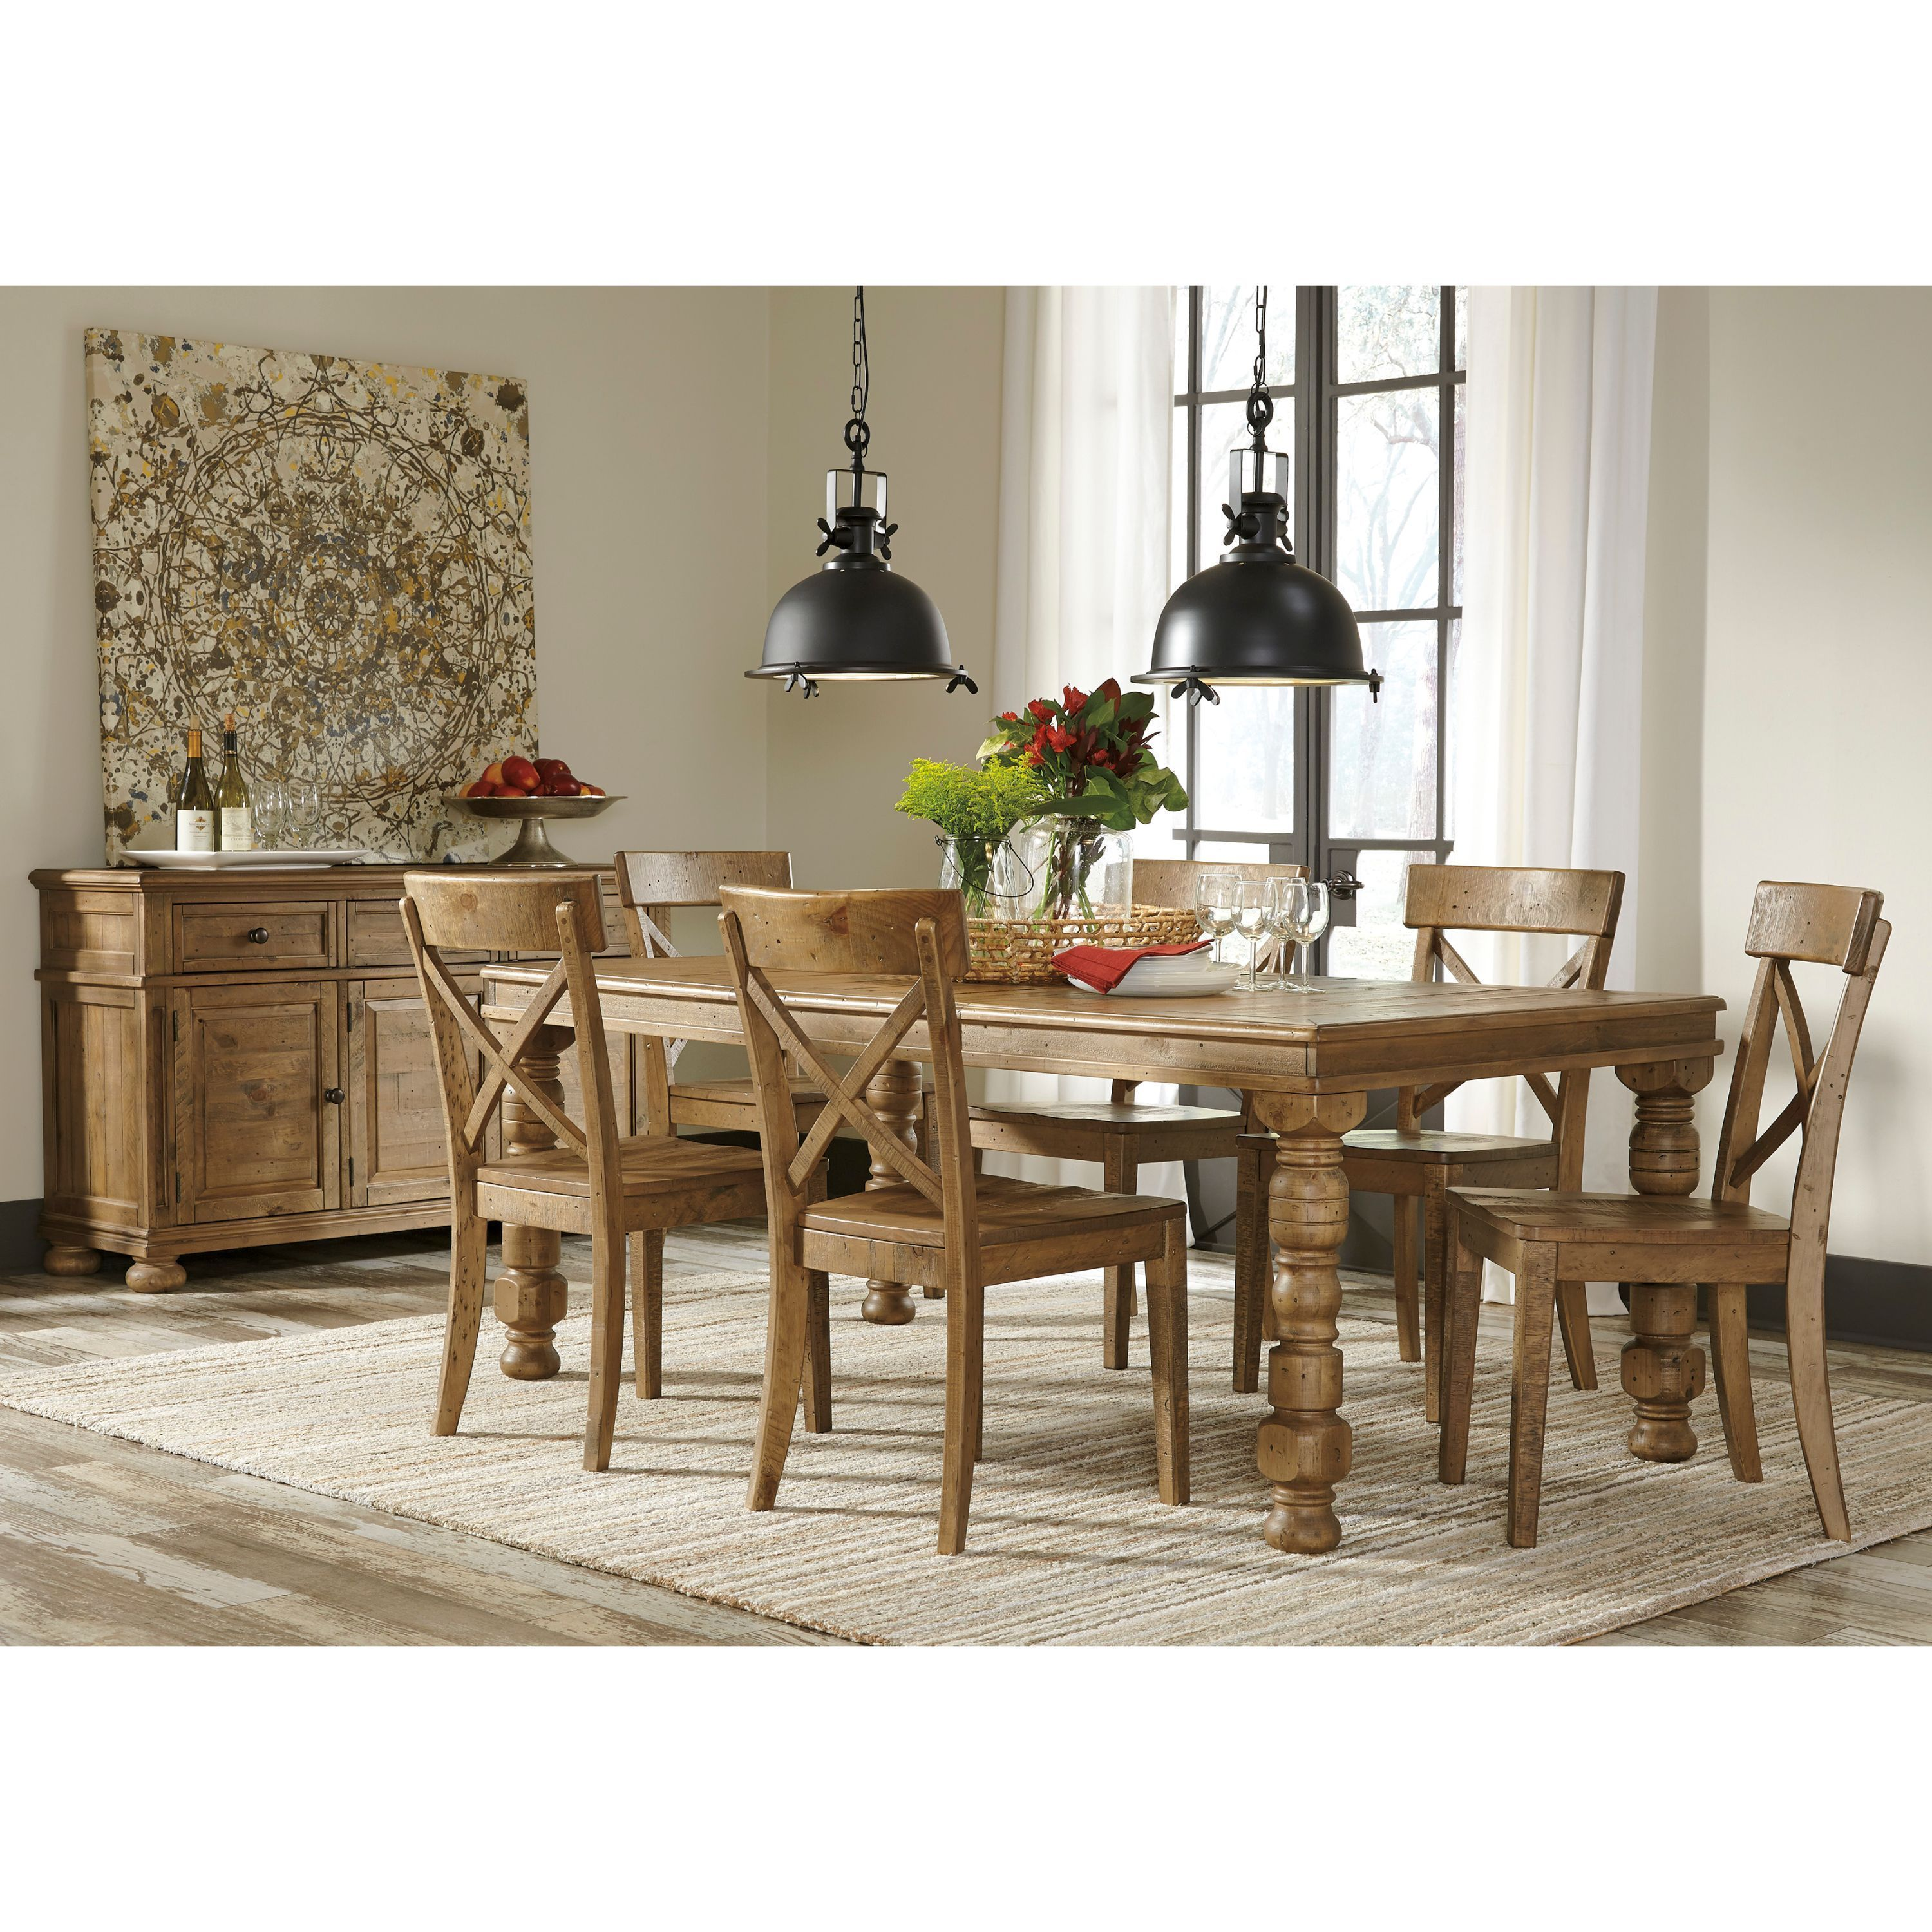 Signature Design By Ashley Trishley Brown Dining Room